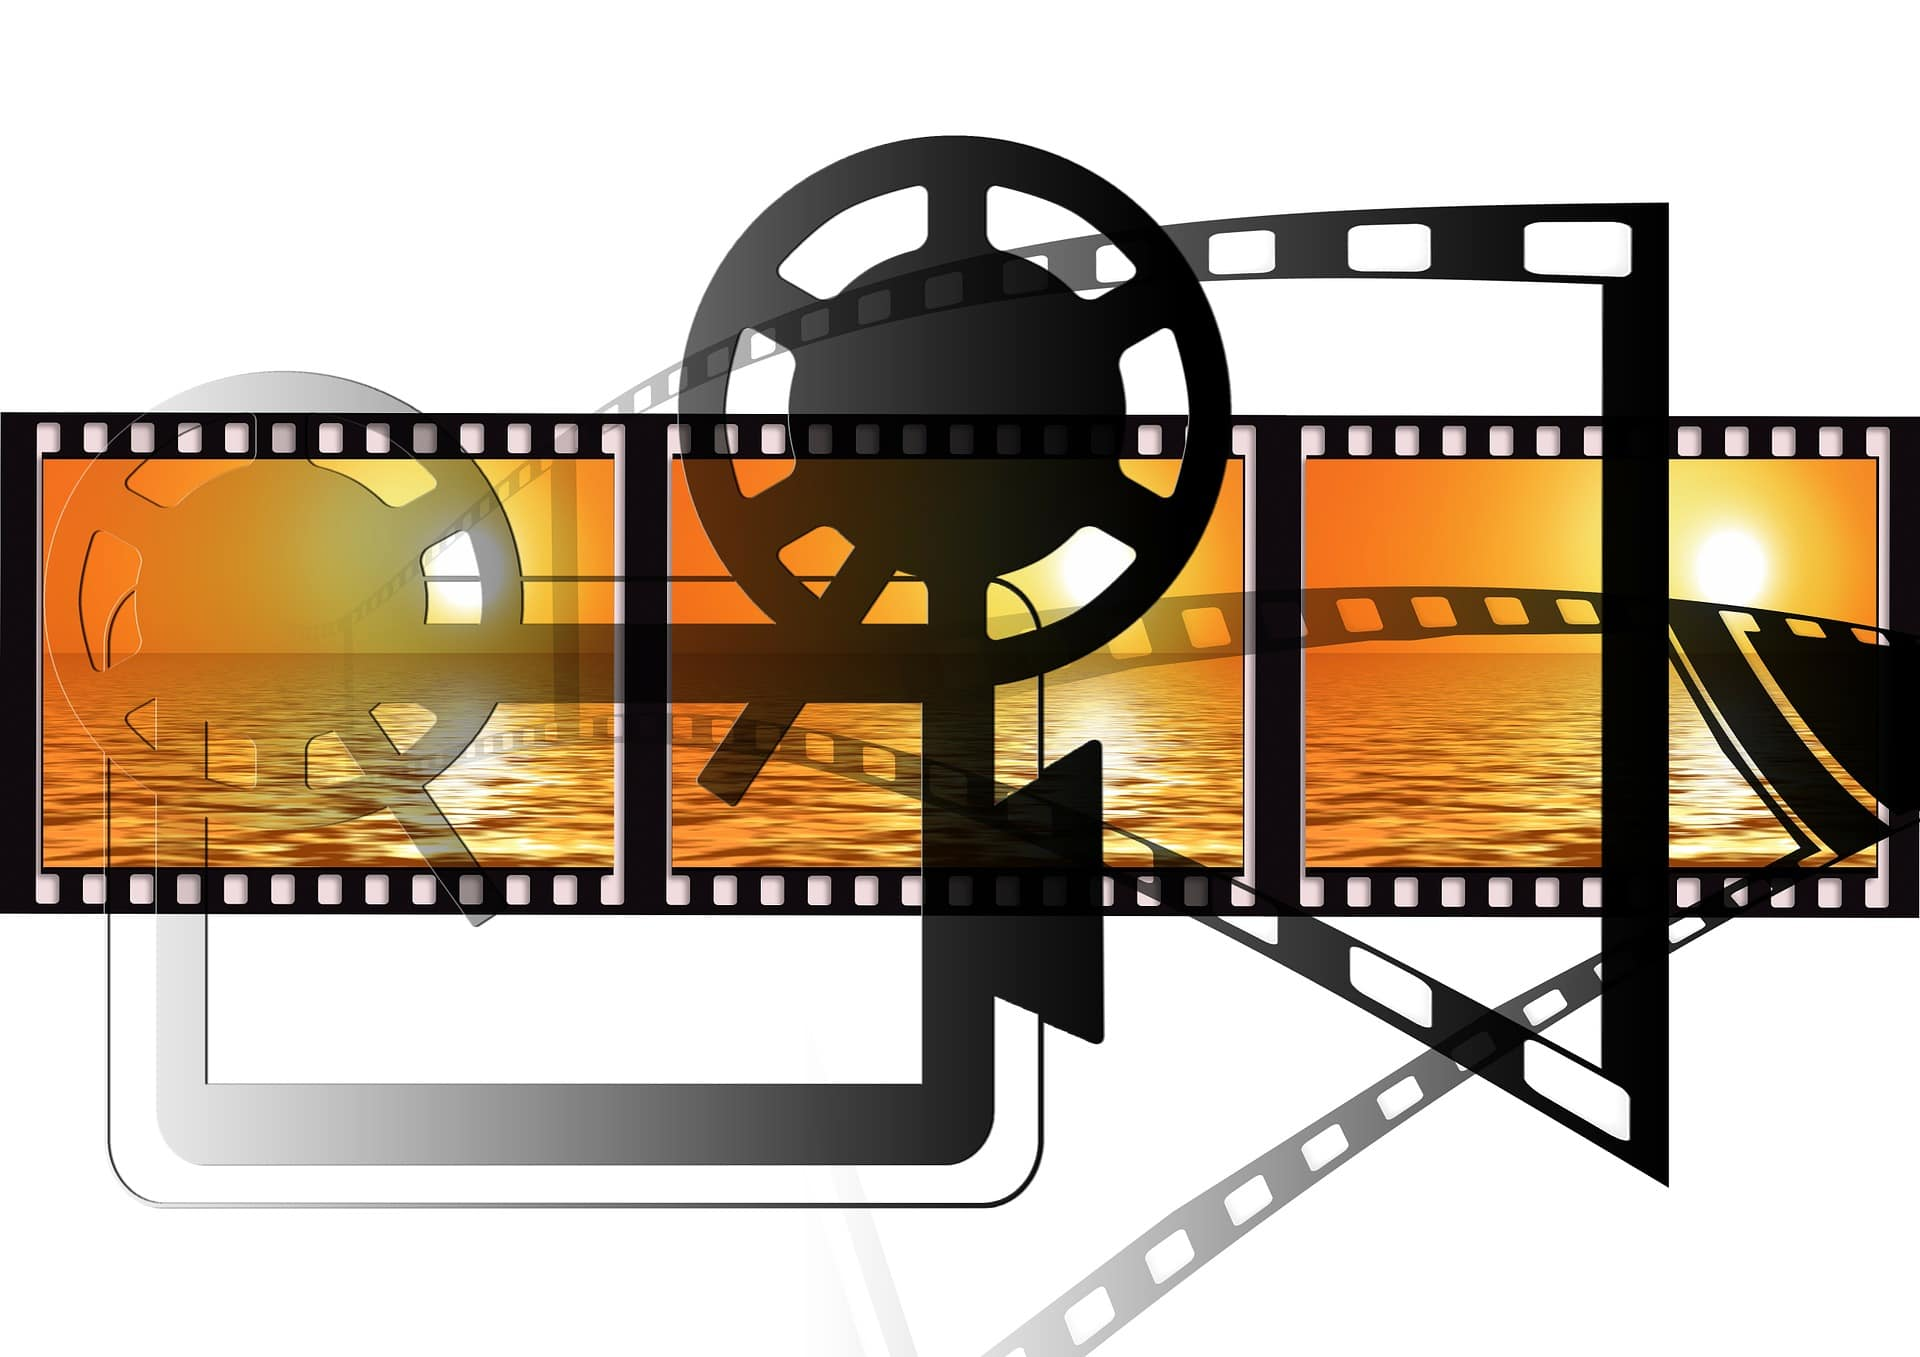 Movie iconography. Projector, film, reel, sunset. Represents New York and New Jersey Commercial Production